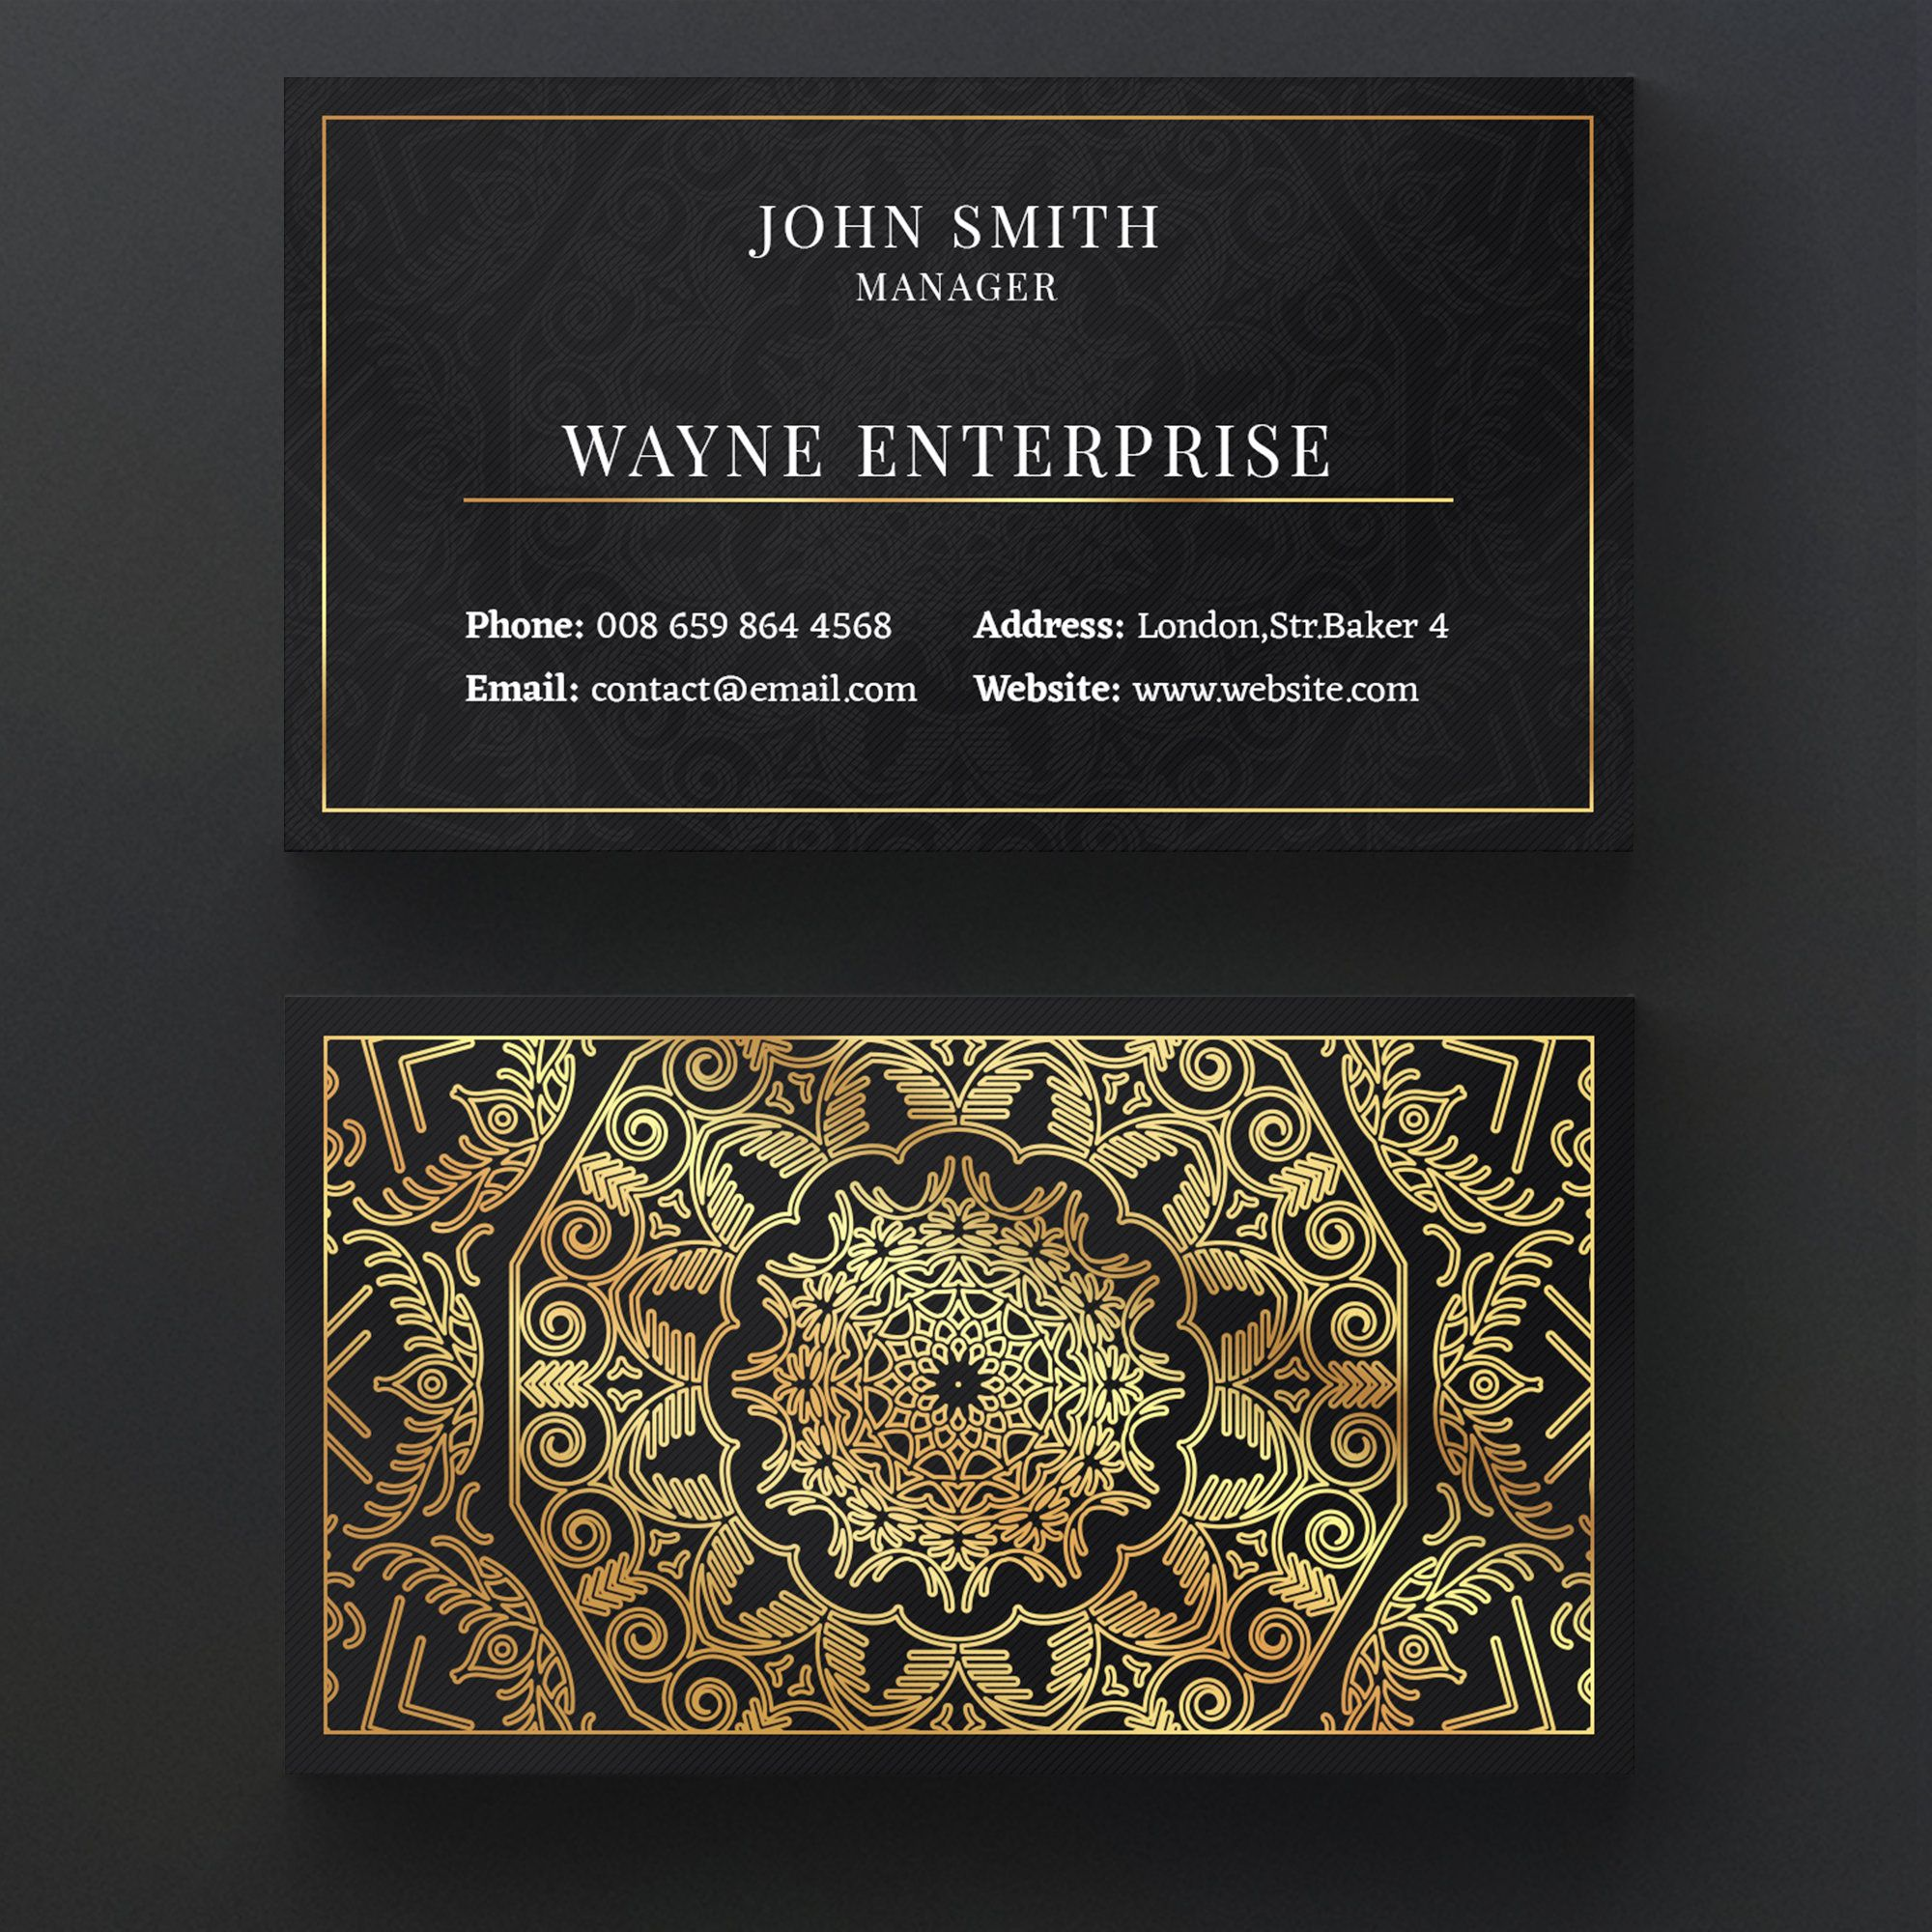 Luxury Mandala Business Card Luxury Business Card Design Business Card Template Exclusive Stationary Template Corporate Branding Template Luxury Business Cards Visiting Card Design Vector Business Card